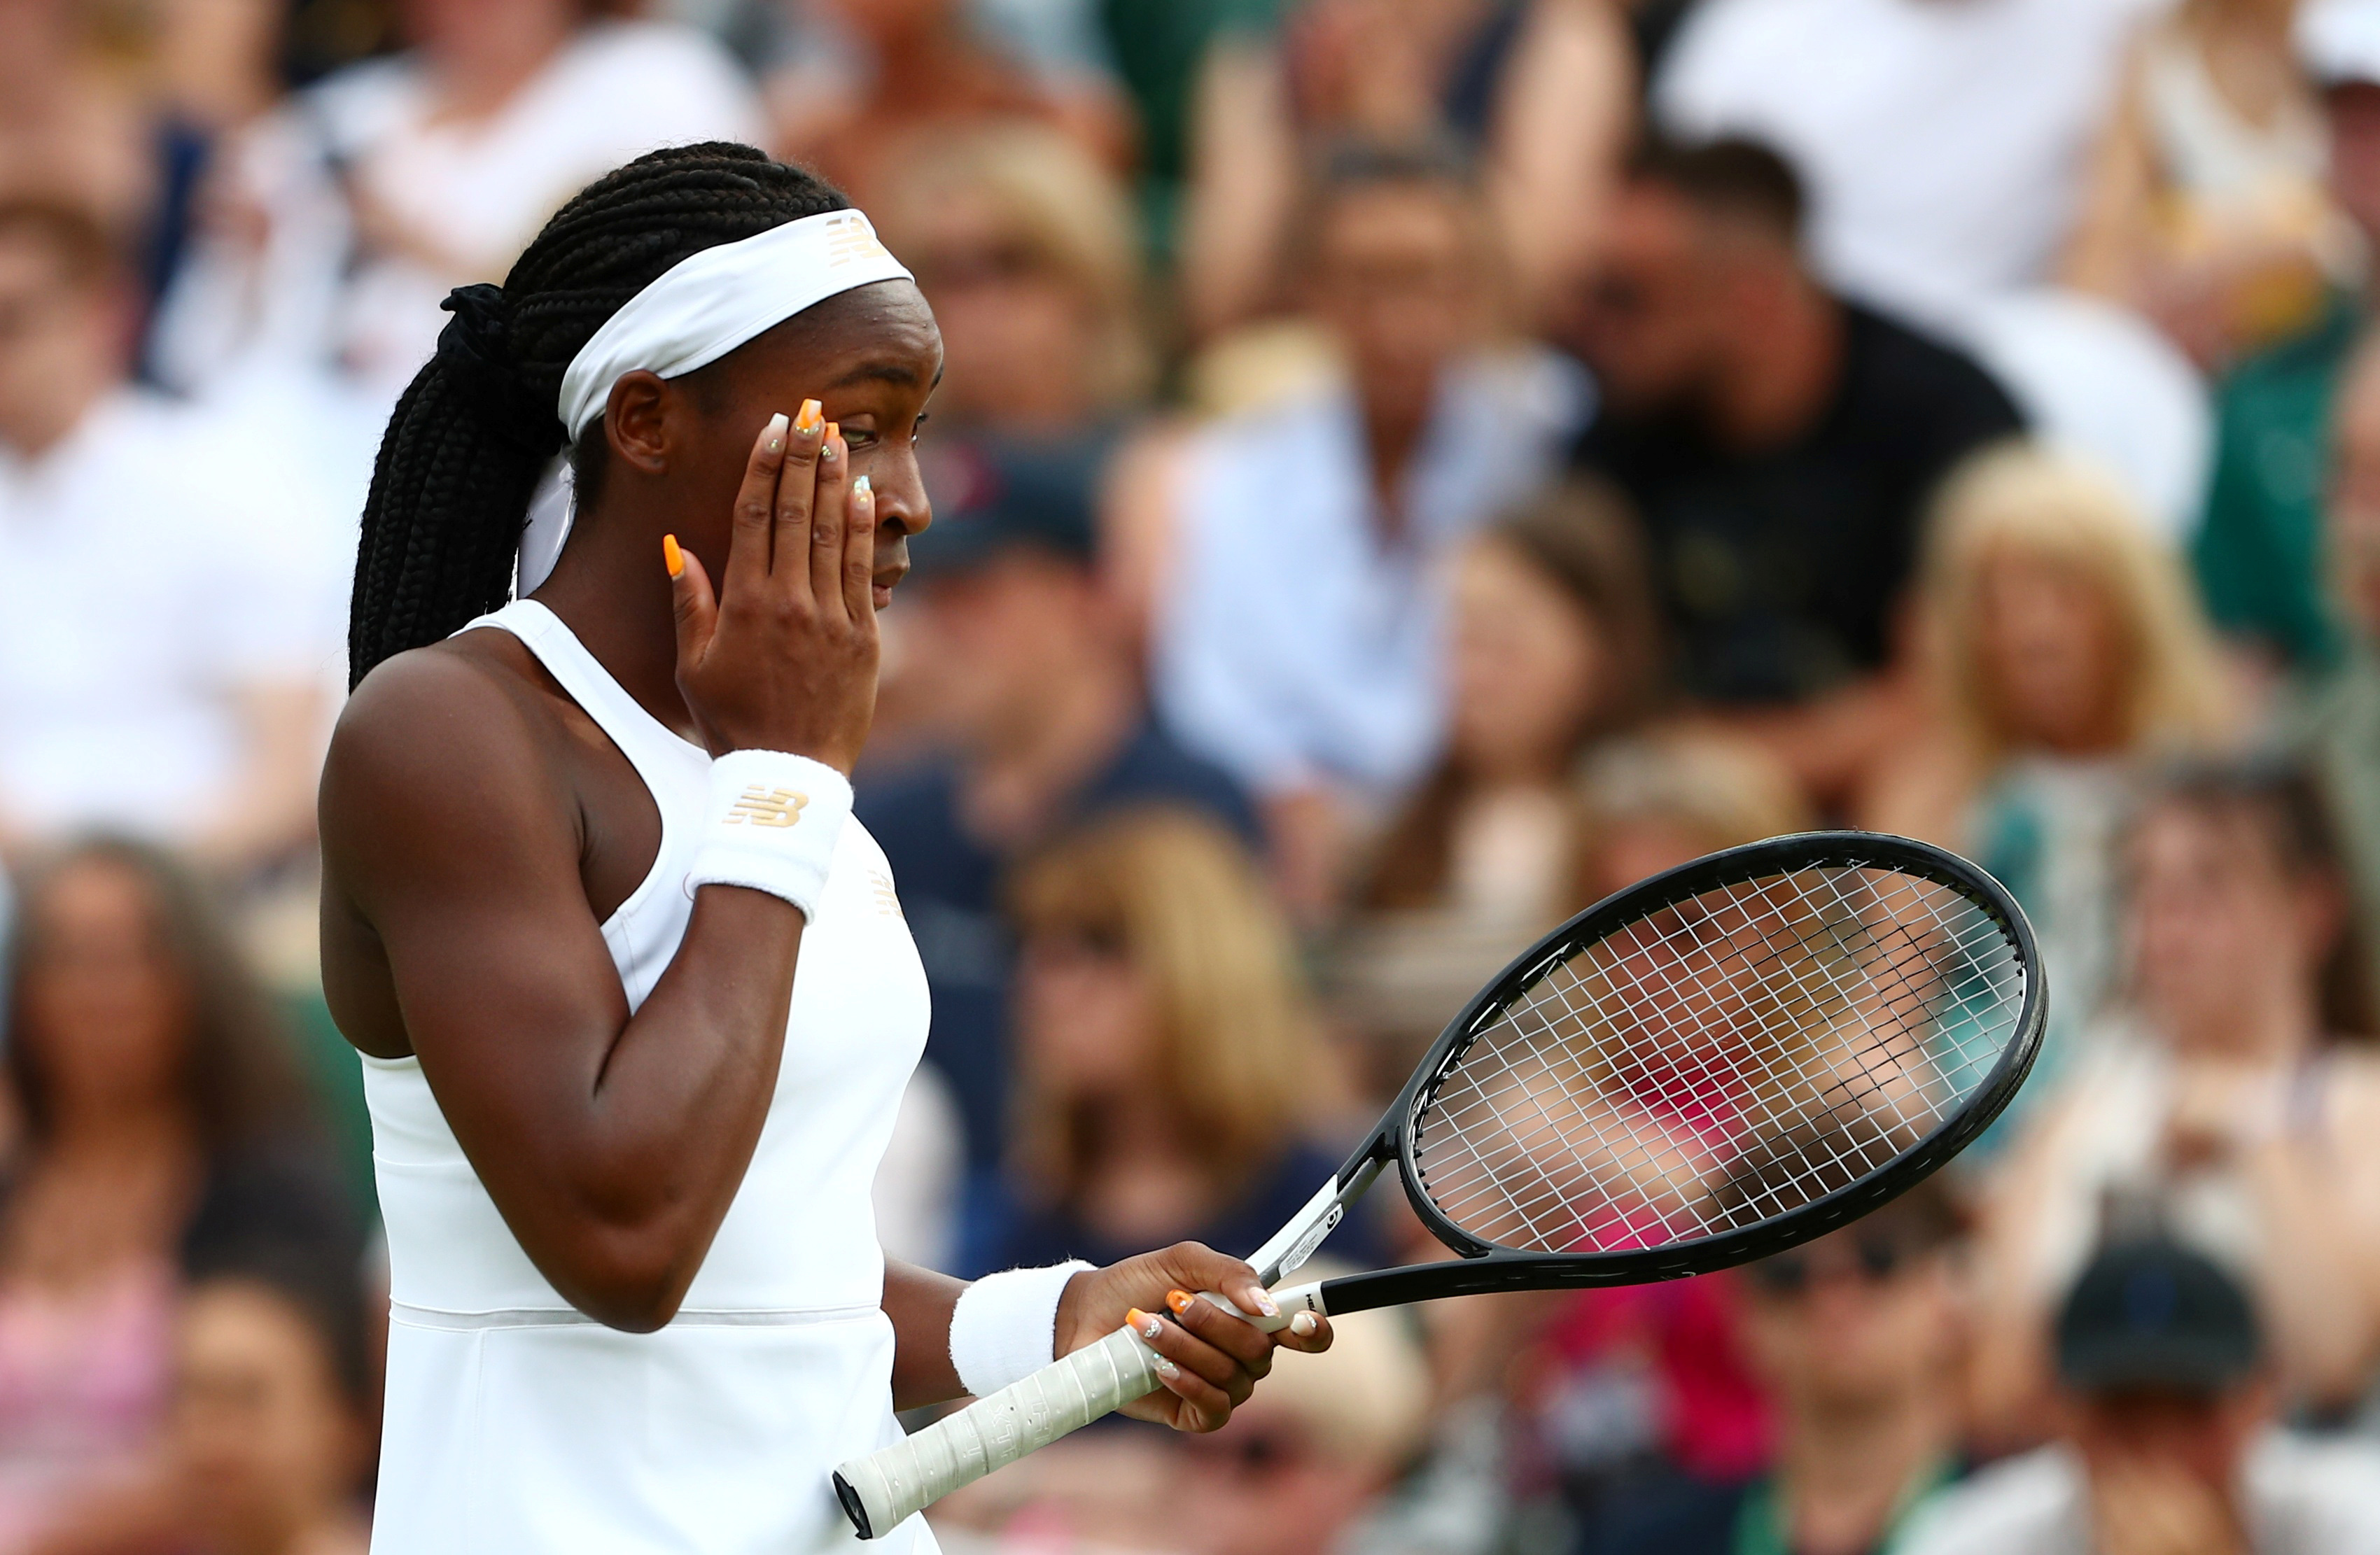 Tennis - Wimbledon - All England Lawn Tennis and Croquet Club, London, Britain - July 6, 2019  Cori Gauff of the U.S. looks dejected after losing her first round mixed doubles match against Sweden's Robert Lindstedt and Latvia's Jelena Ostapenko  REUTERS/Hannah McKay